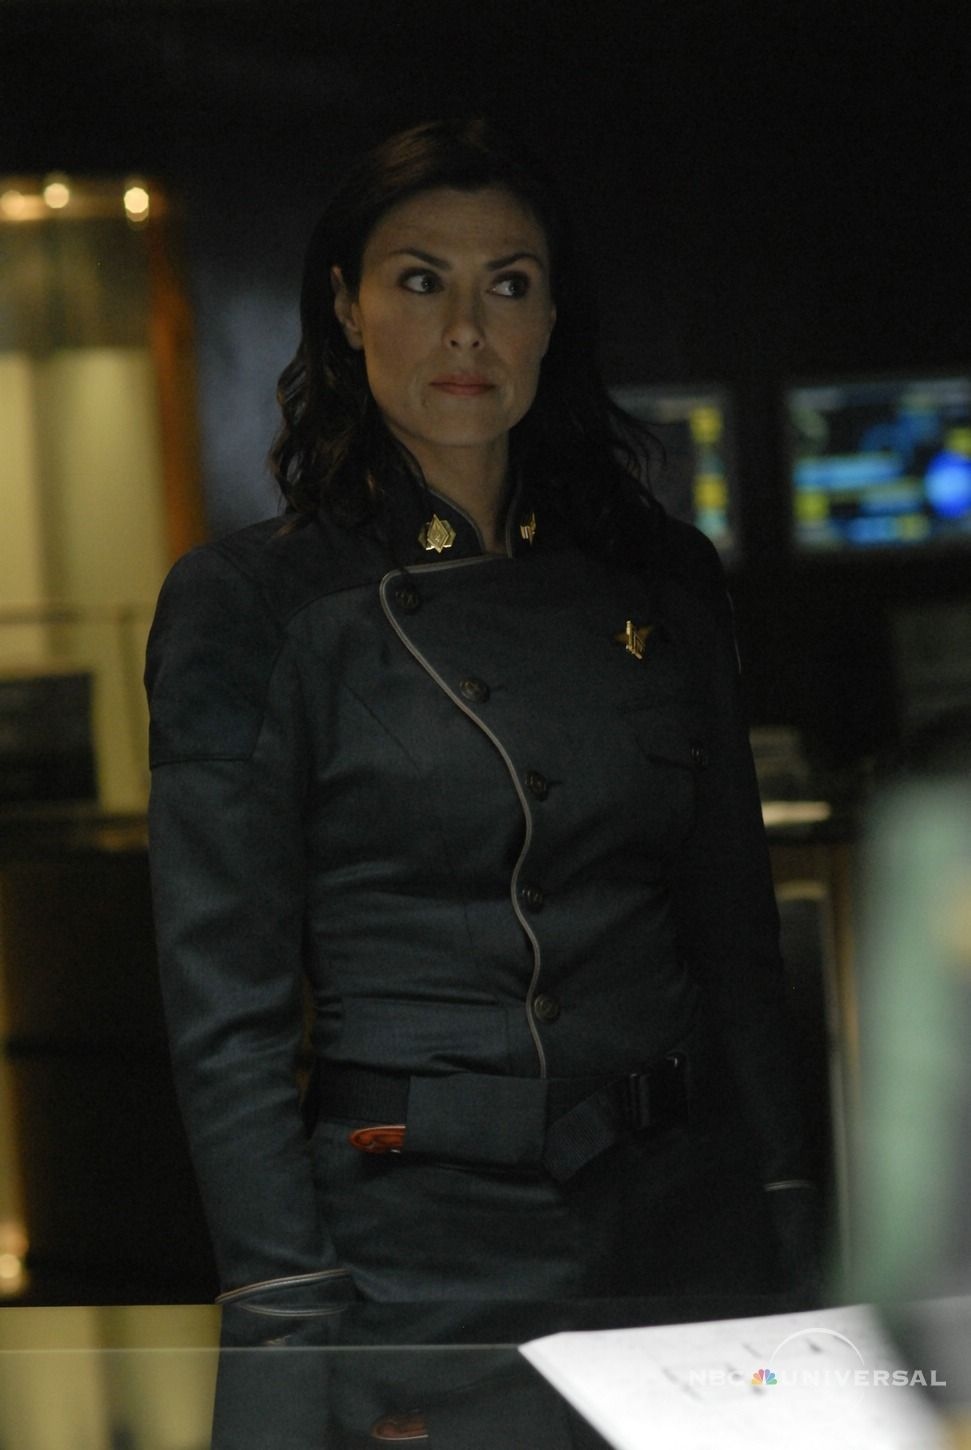 Helena Cain | Battlestar galactica, Battle star, Science ...